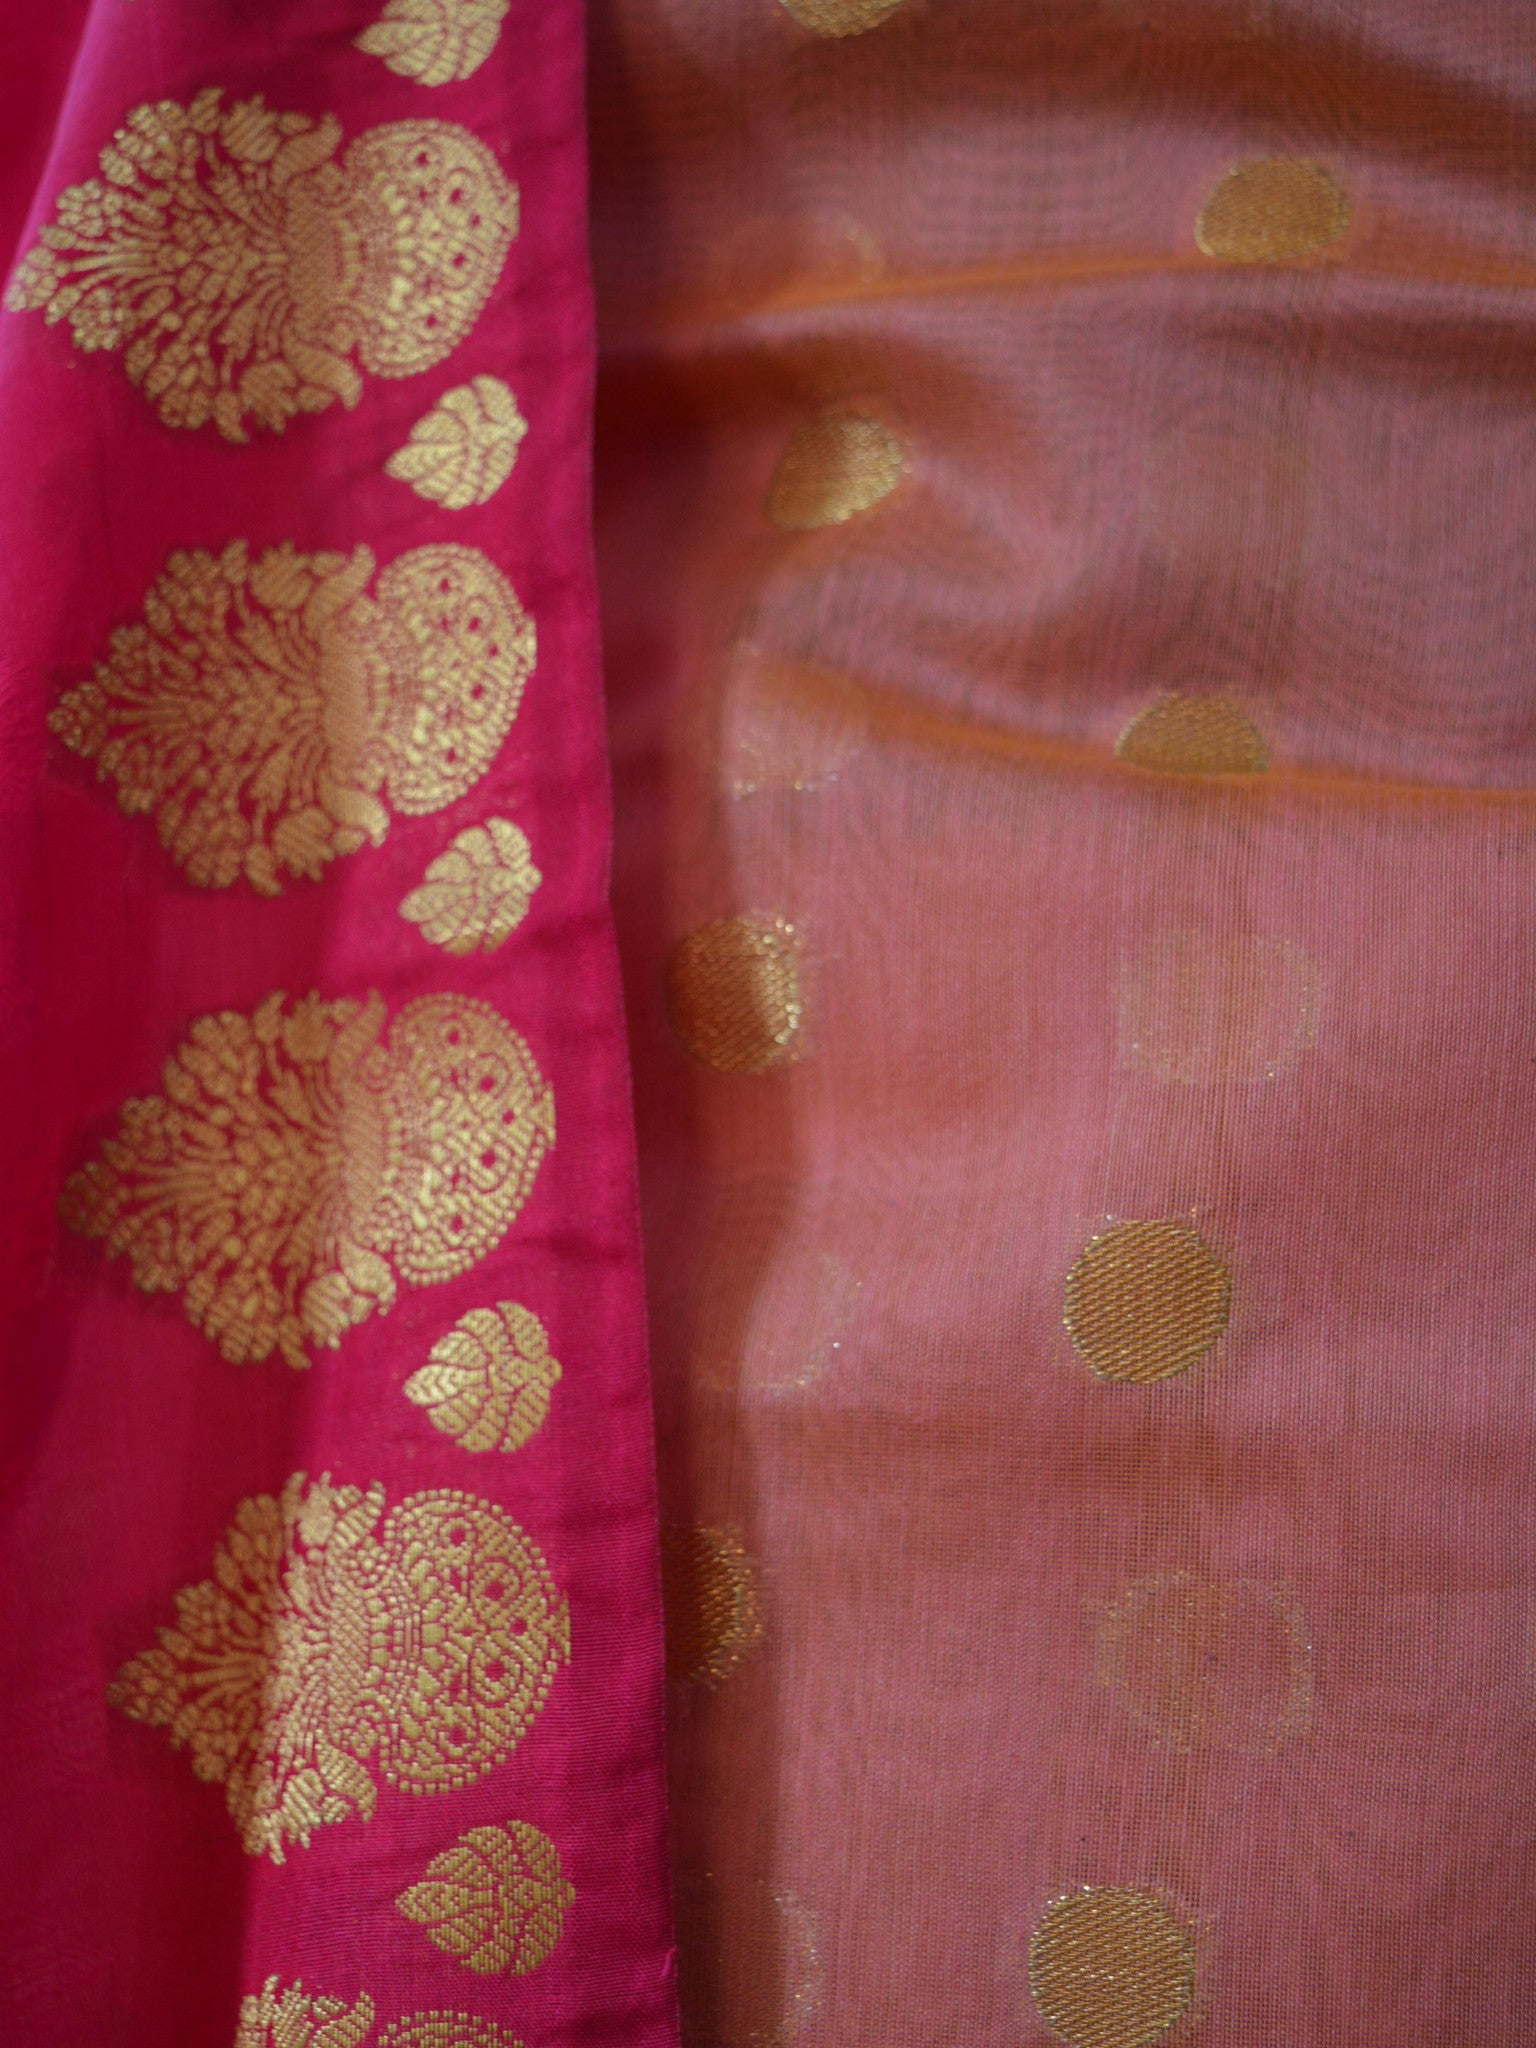 Banarasee/Banarasi Chanderi Cotton Salwar Kameez Fabric With Contrast Pink Art Silk Dupatta-Peach